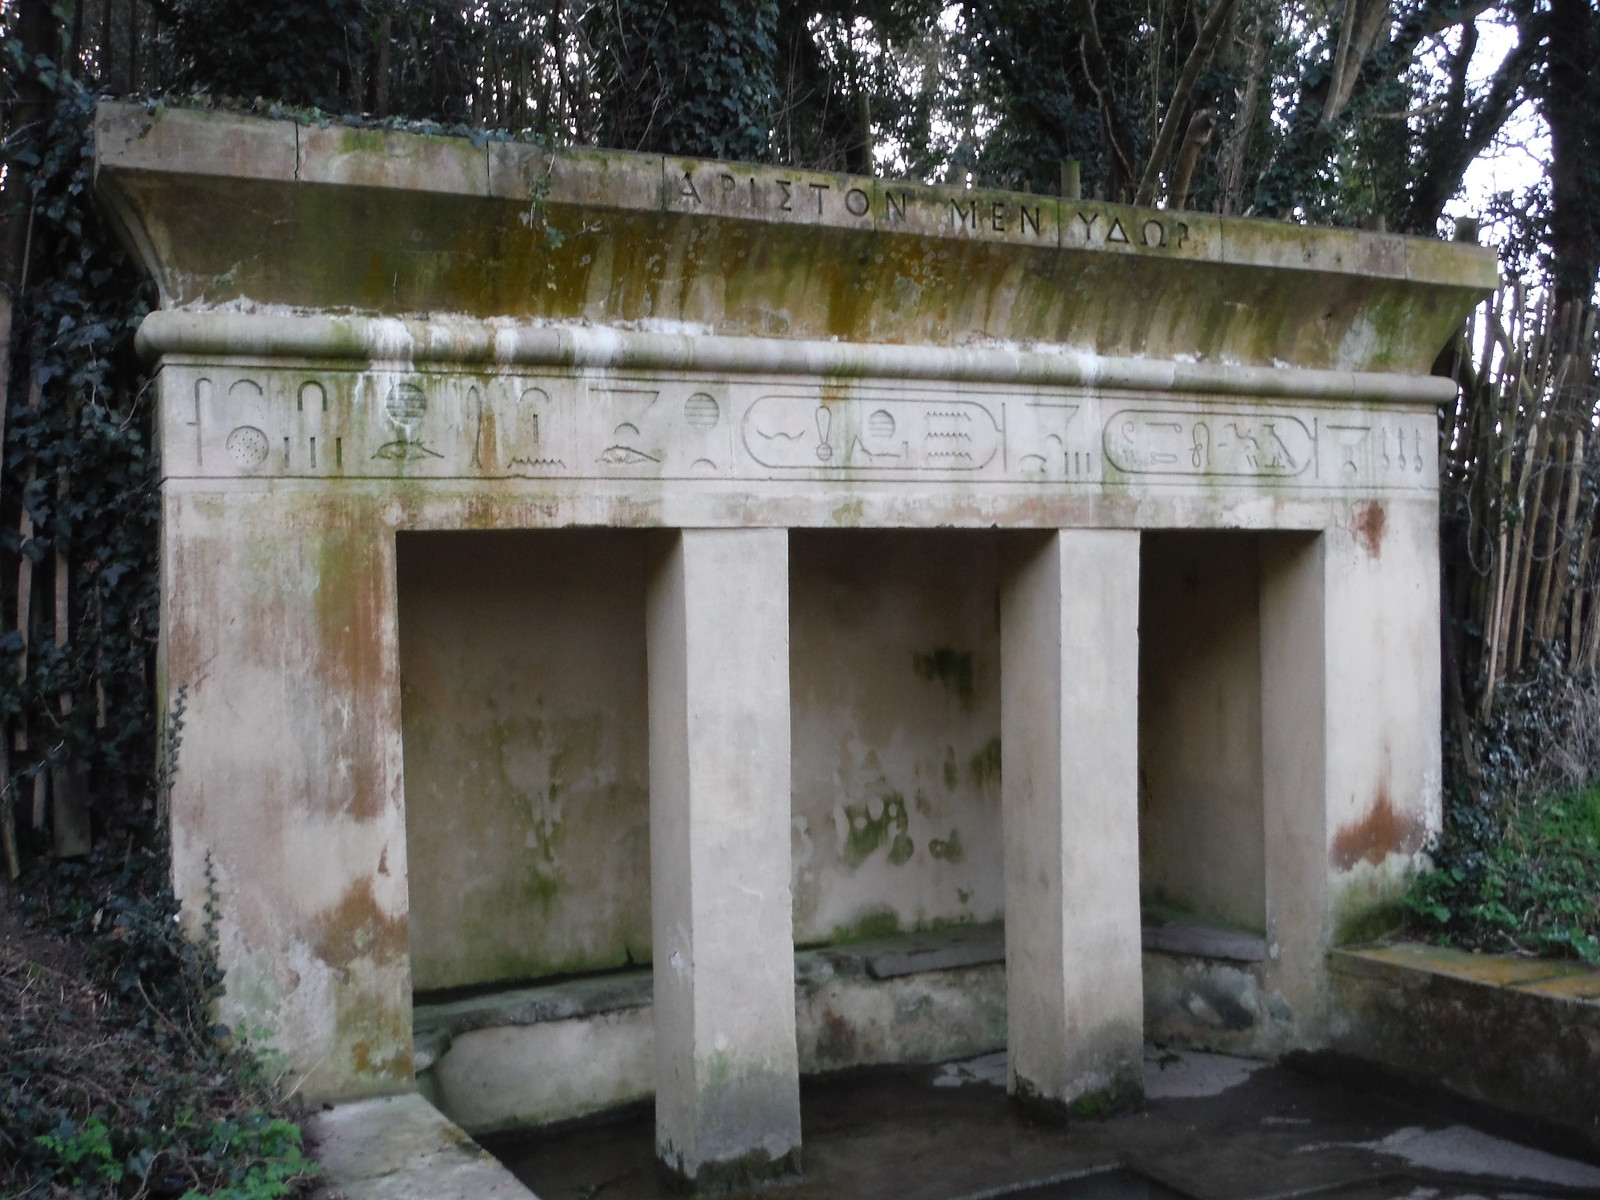 Egyptian Well, Hartwell SWC Walk 193 Haddenham to Aylesbury (via Gibraltar and Ford)